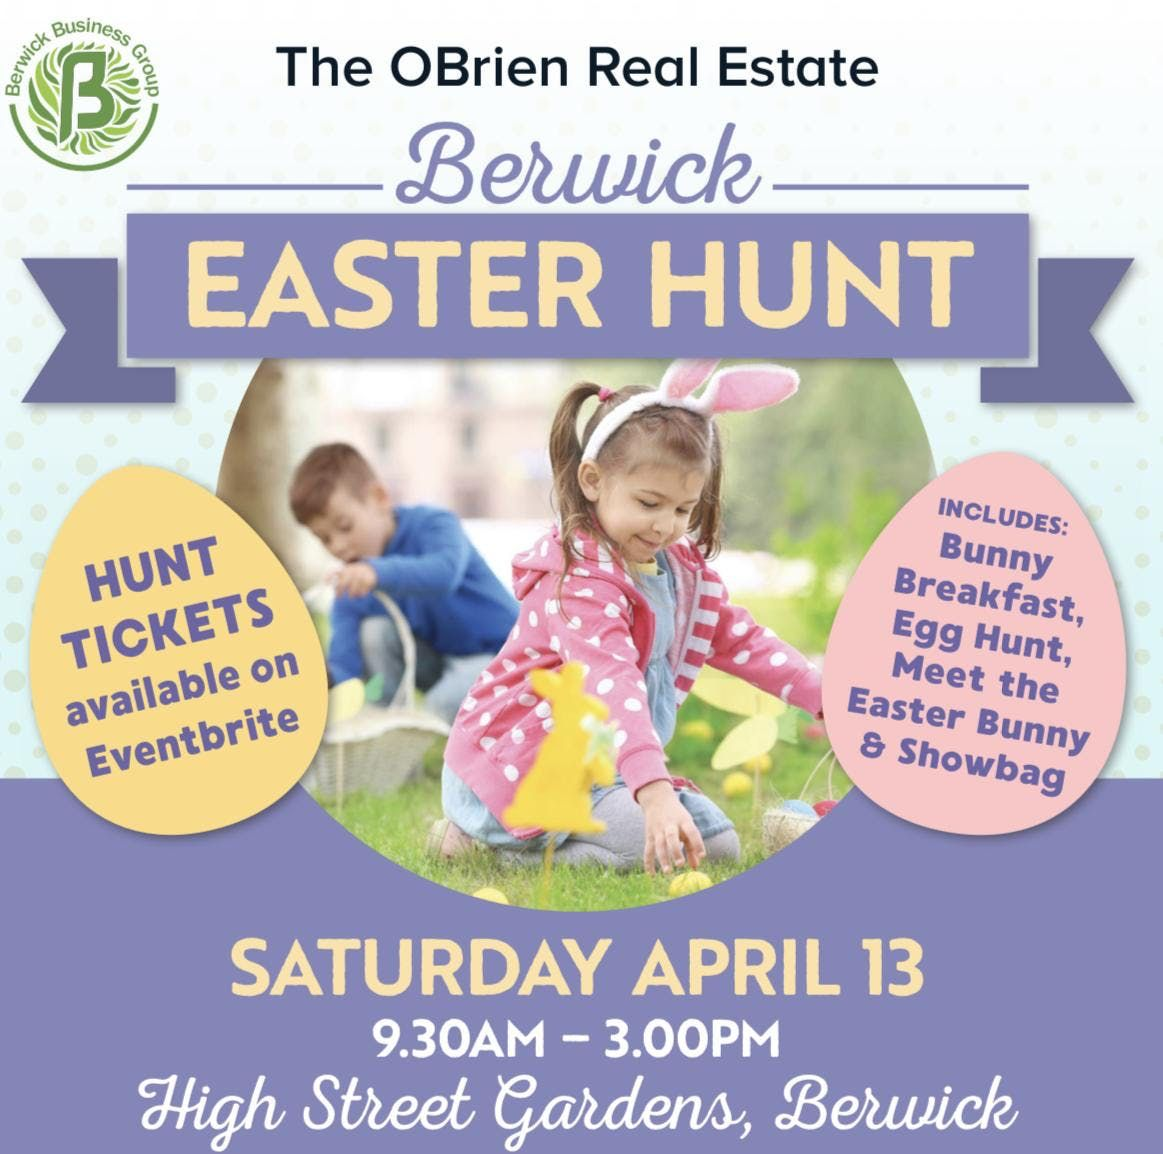 Berwick Easter Egg Hunt by OBrien Realestate Berwick & Berwick Business Group